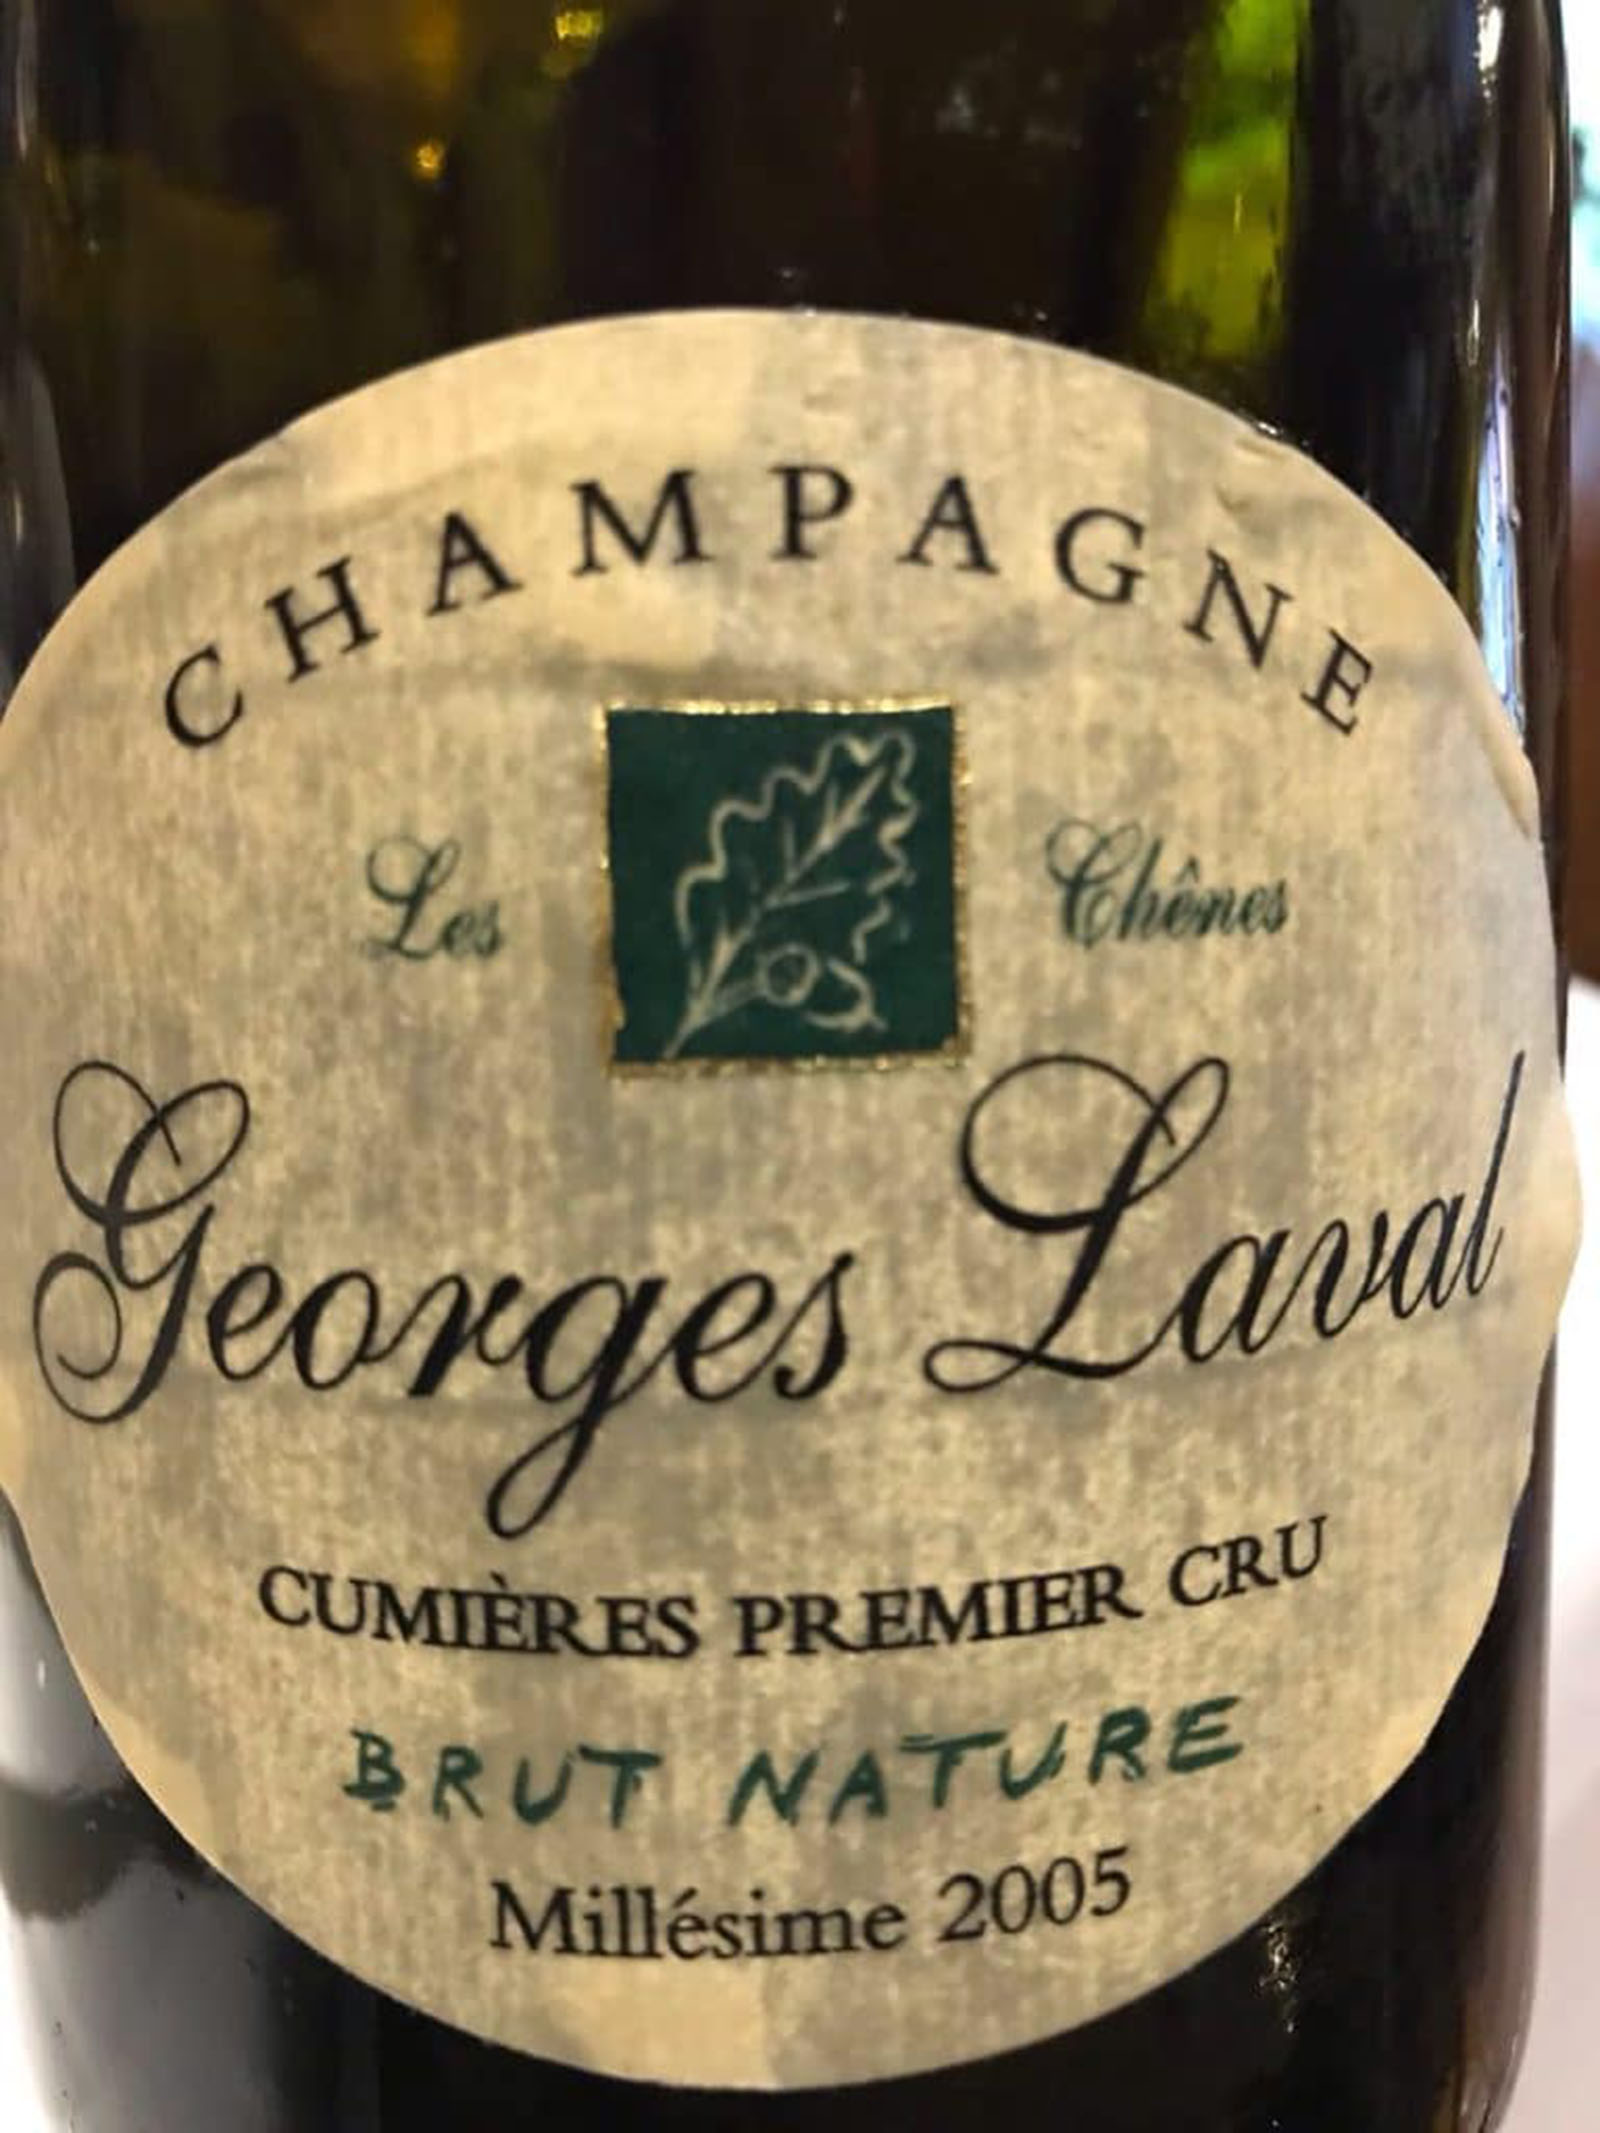 Champagne Georges Laval Les Chenes 2005